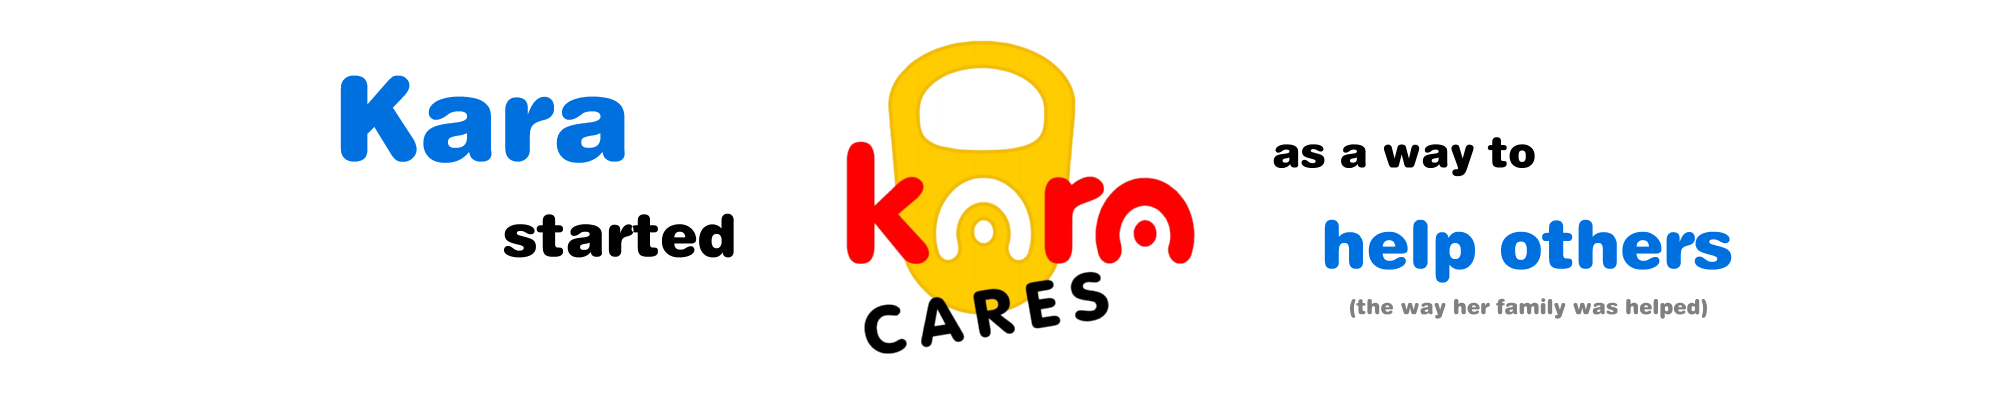 Kara Cares is helping others